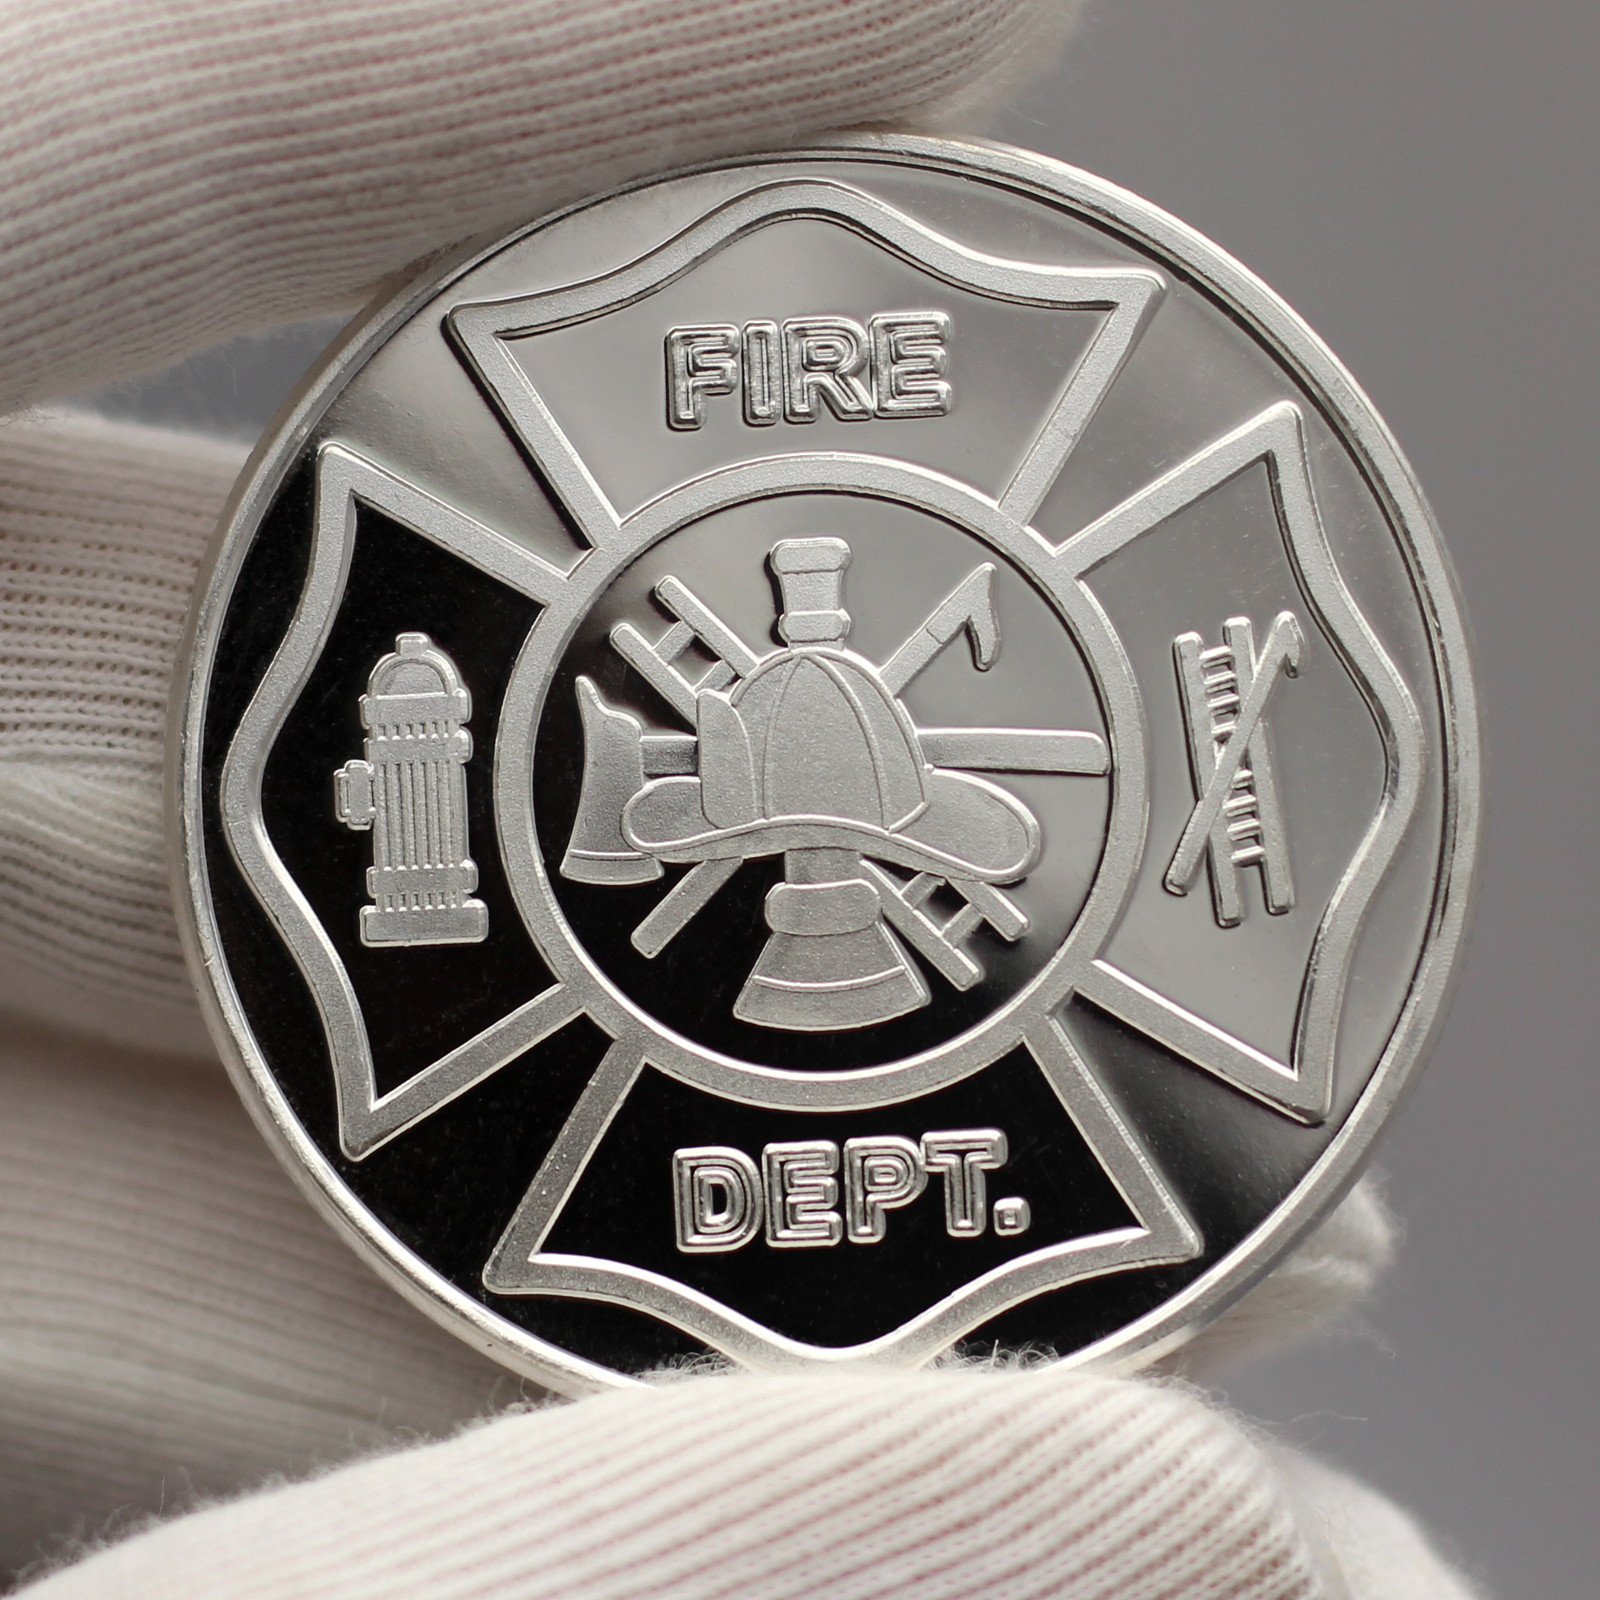 Fire Department Firefighter 1oz .999 Silver Round by SilverTowne in Gift Box